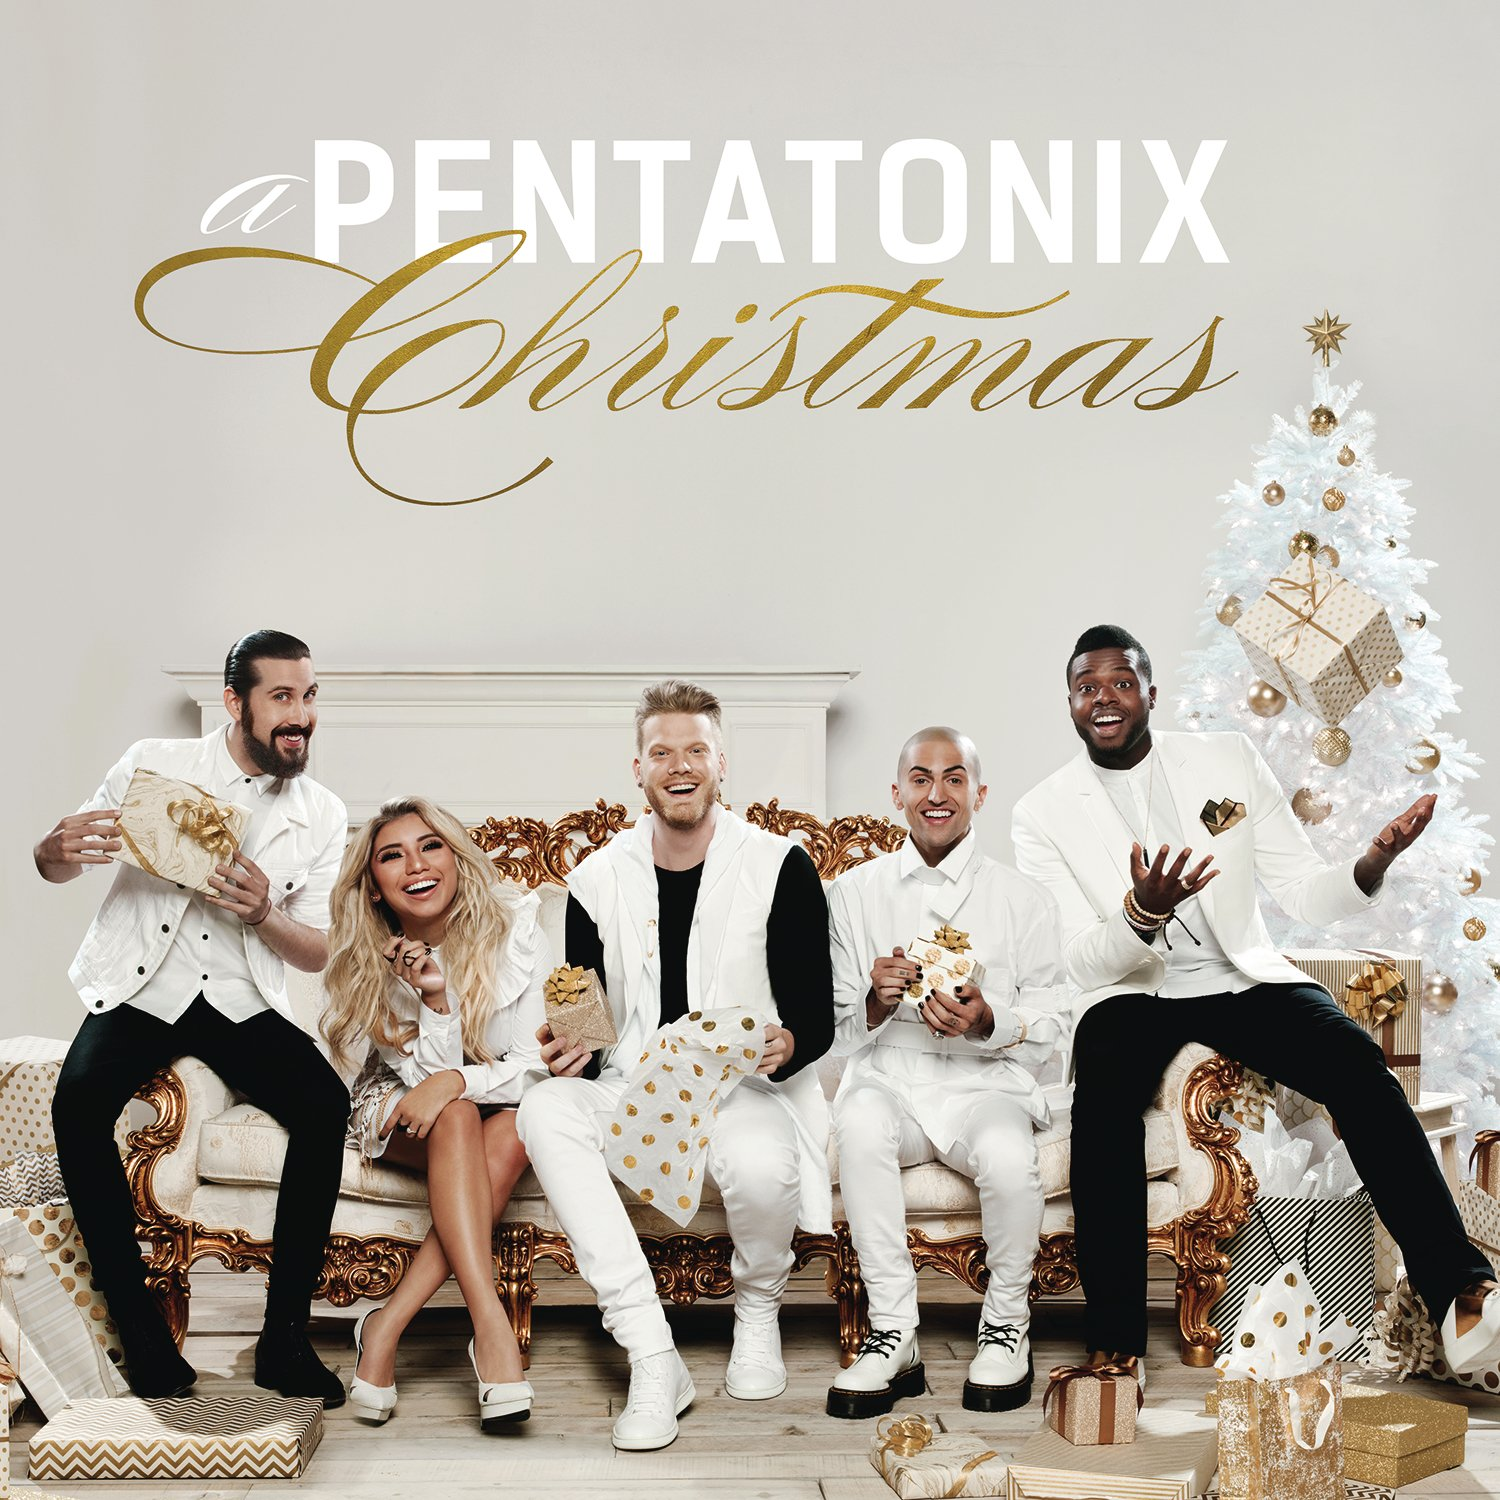 A Pentatonix Christmas by RCA